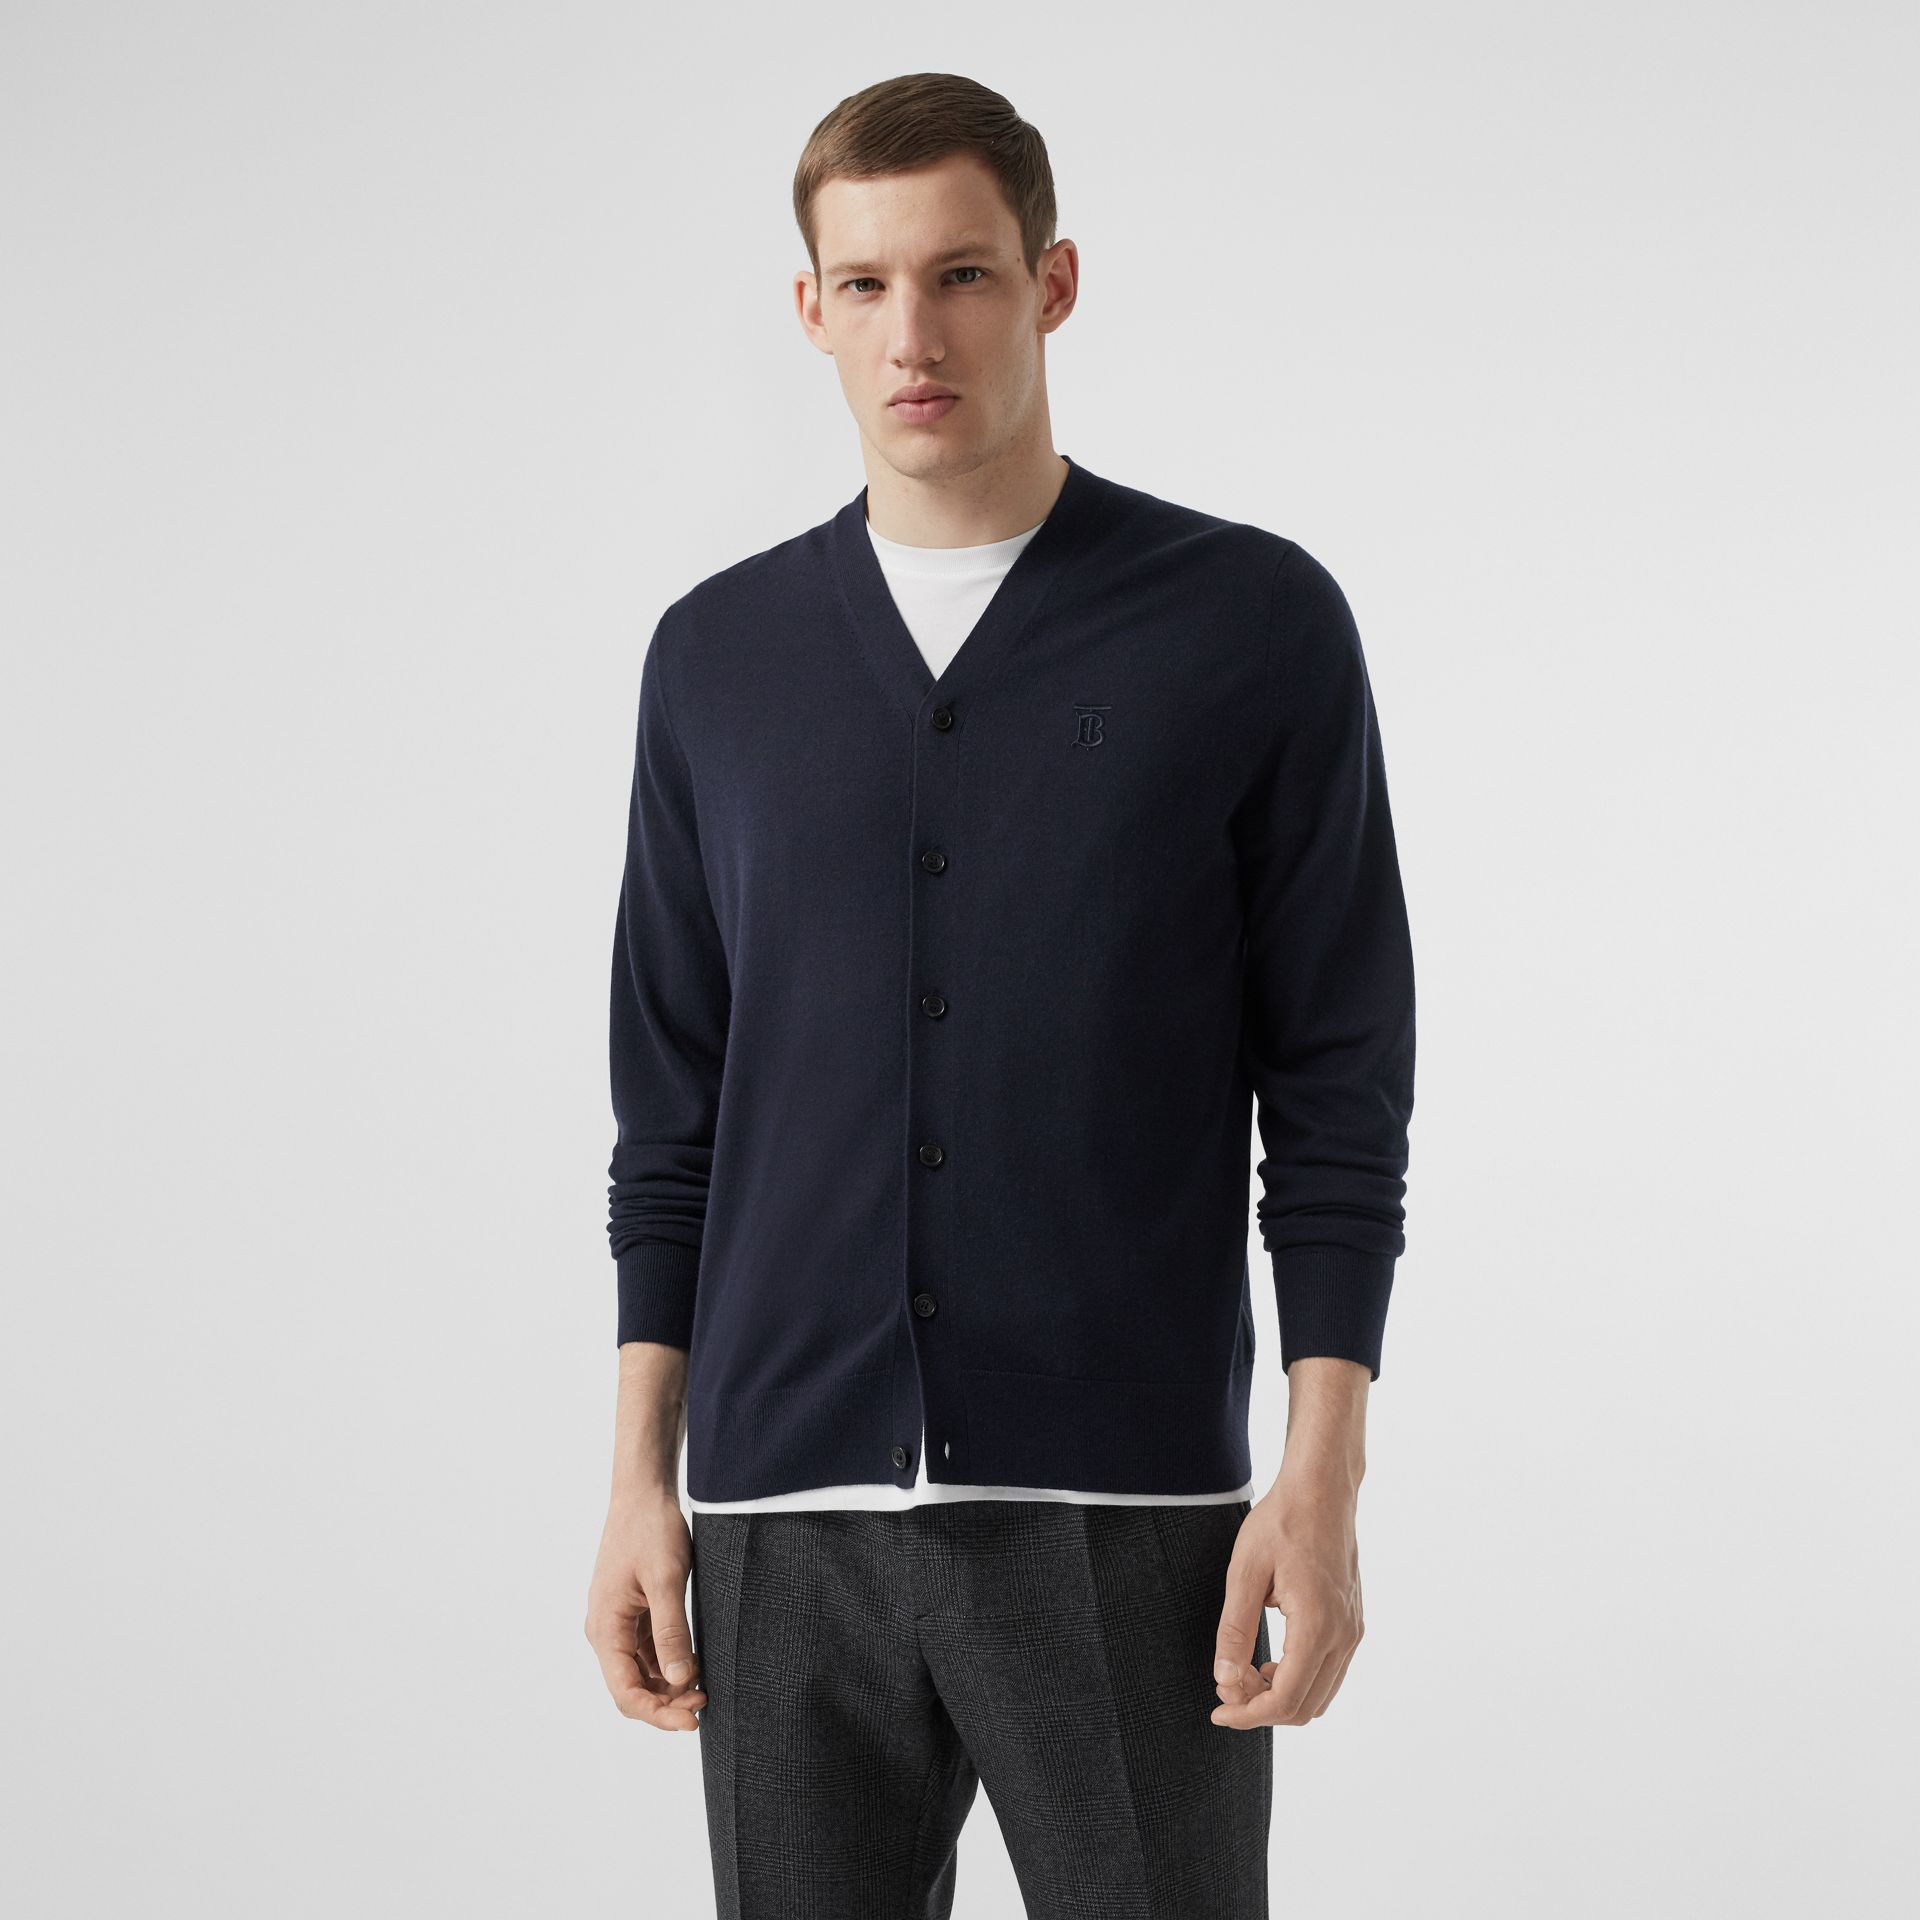 Monogram Motif Cashmere Cardigan in Navy - Men | Burberry Hong Kong S.A.R - gallery image 4